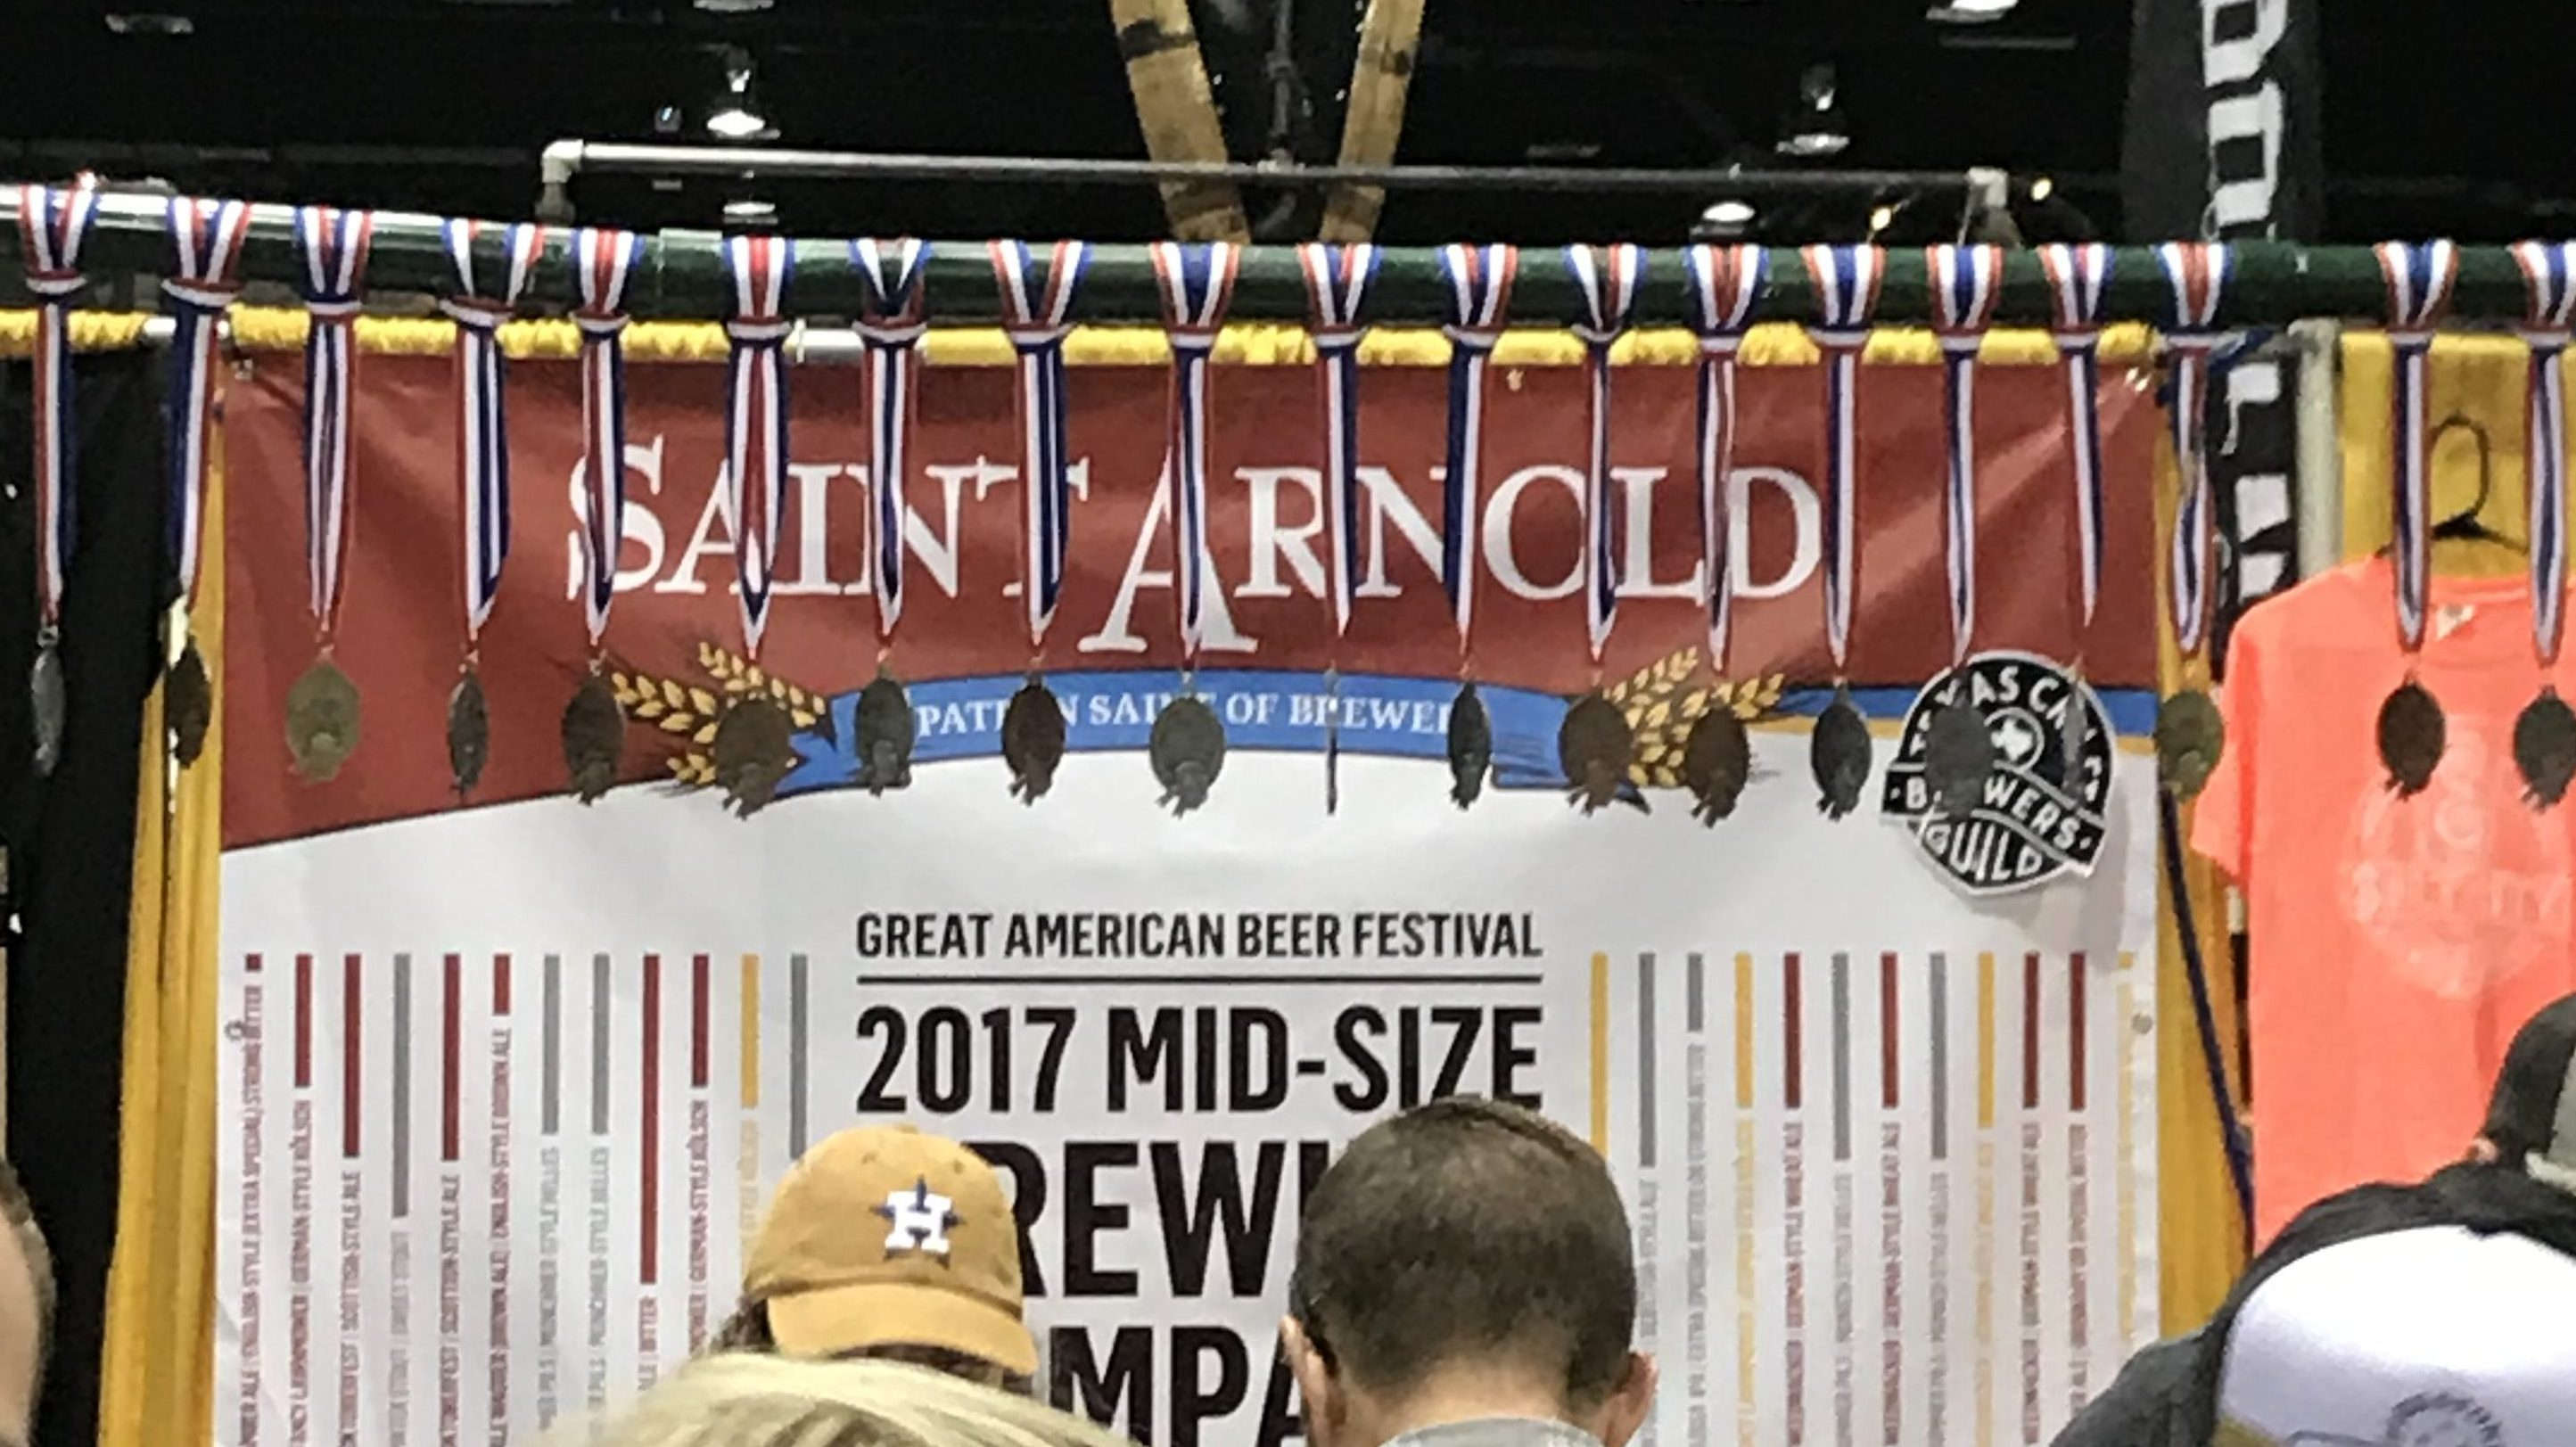 The Saint Arnold booth at the Great American Beer Festival in Denver, Colorado.